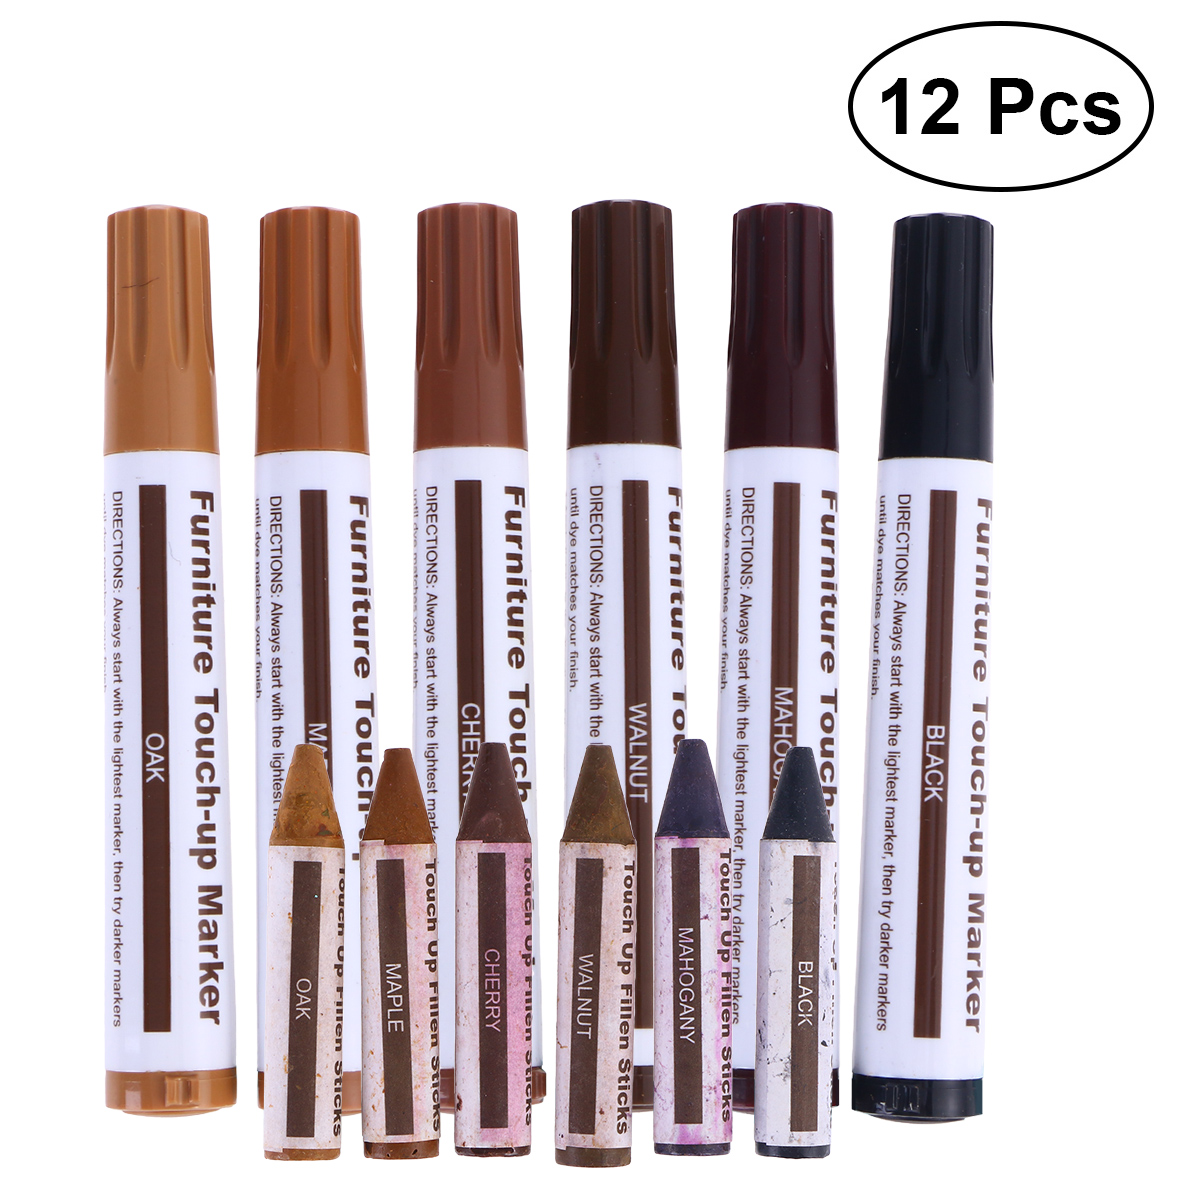 12 Pcs Set Wooden Furniture Touch Up Markers Crayons Stain